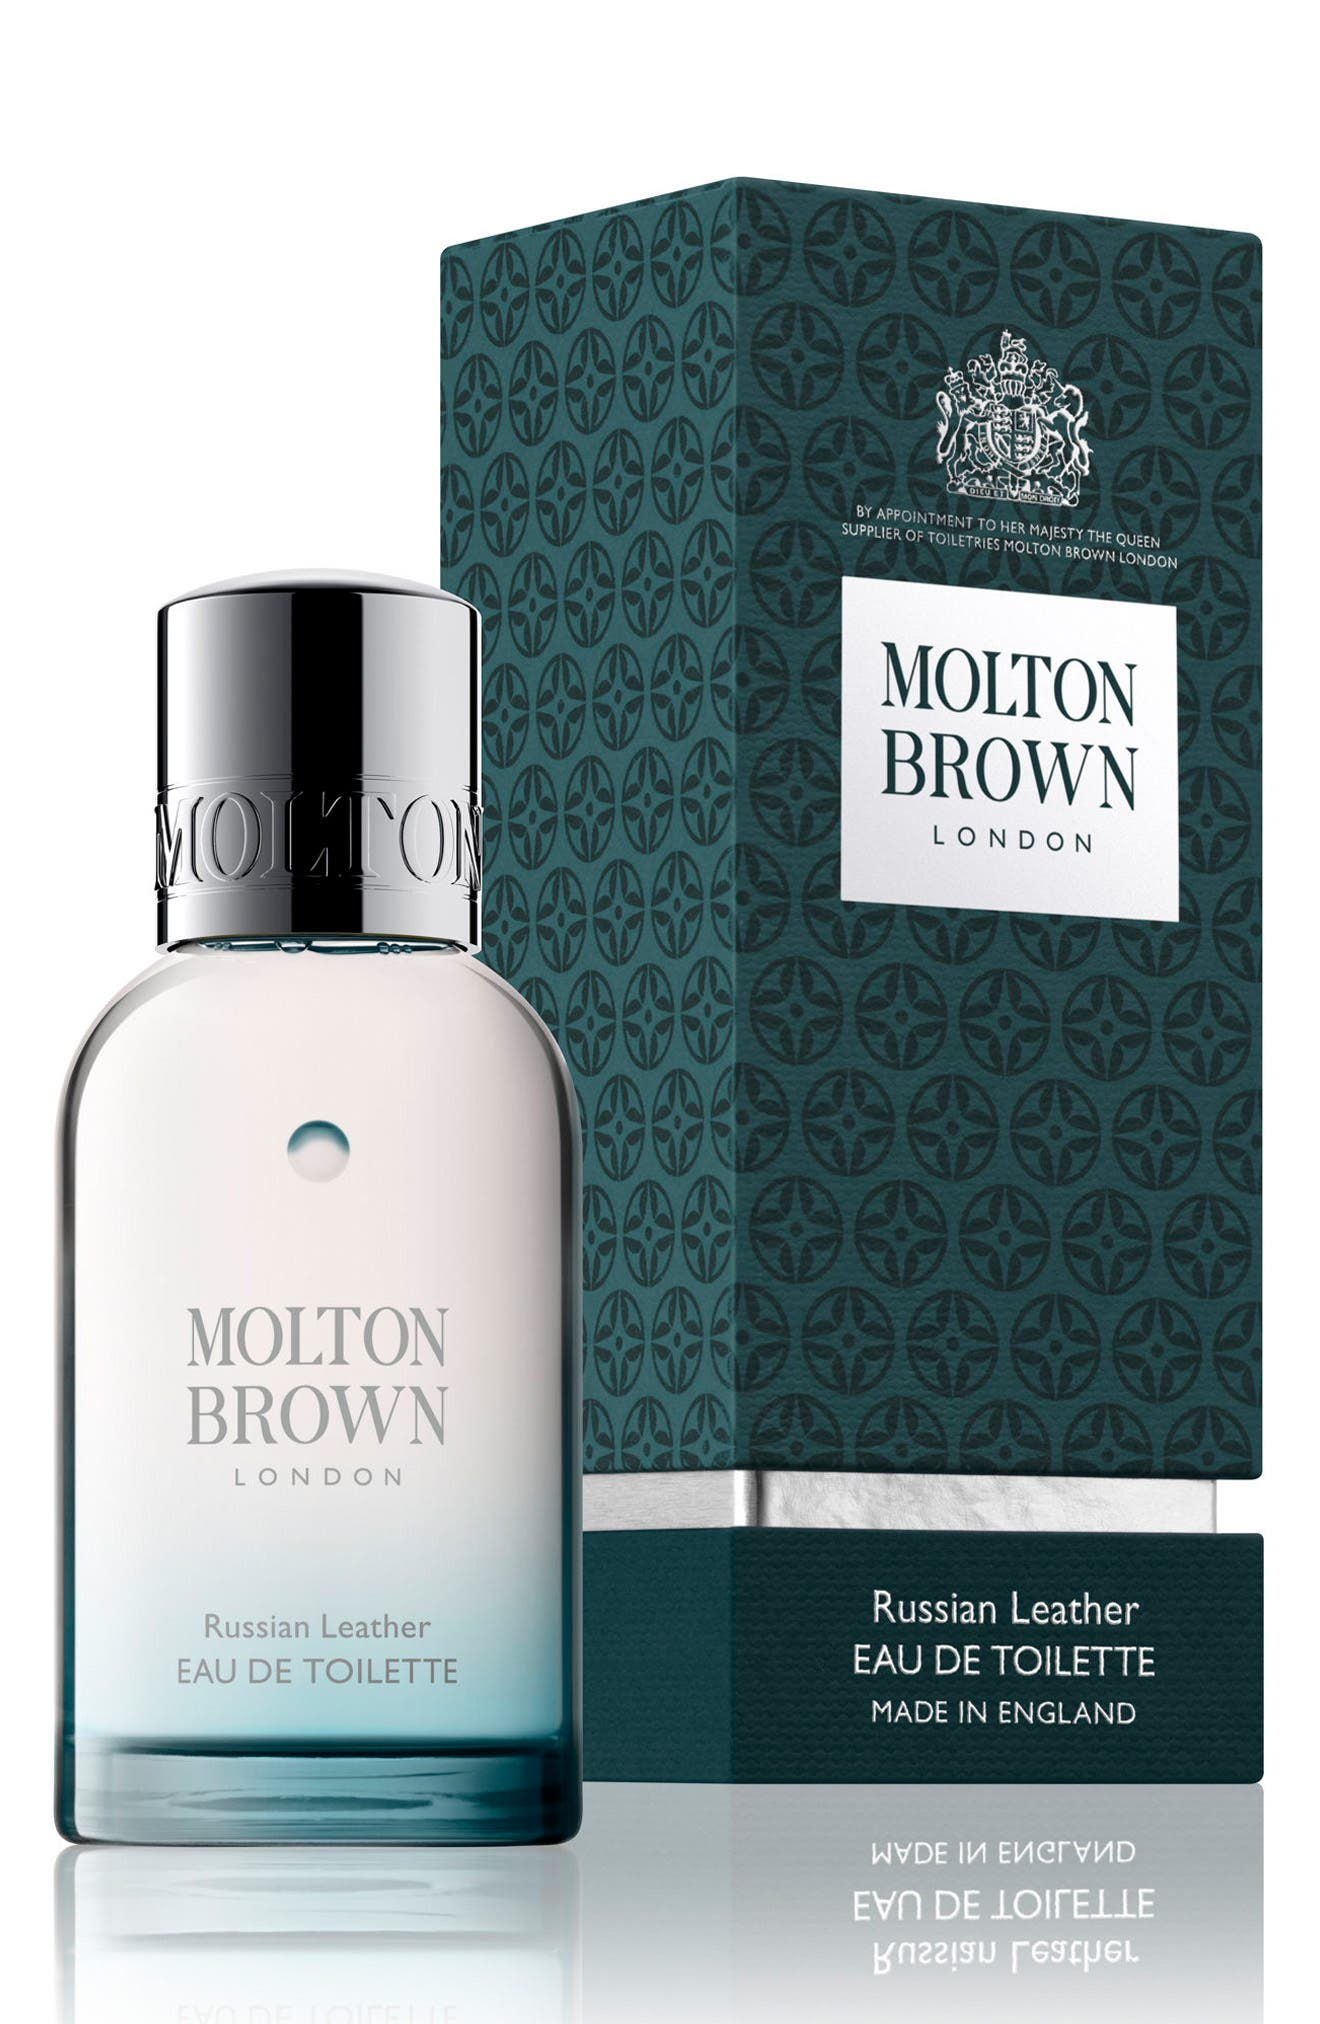 MOLTON BROWN London Russian Leather Eau de Toilette